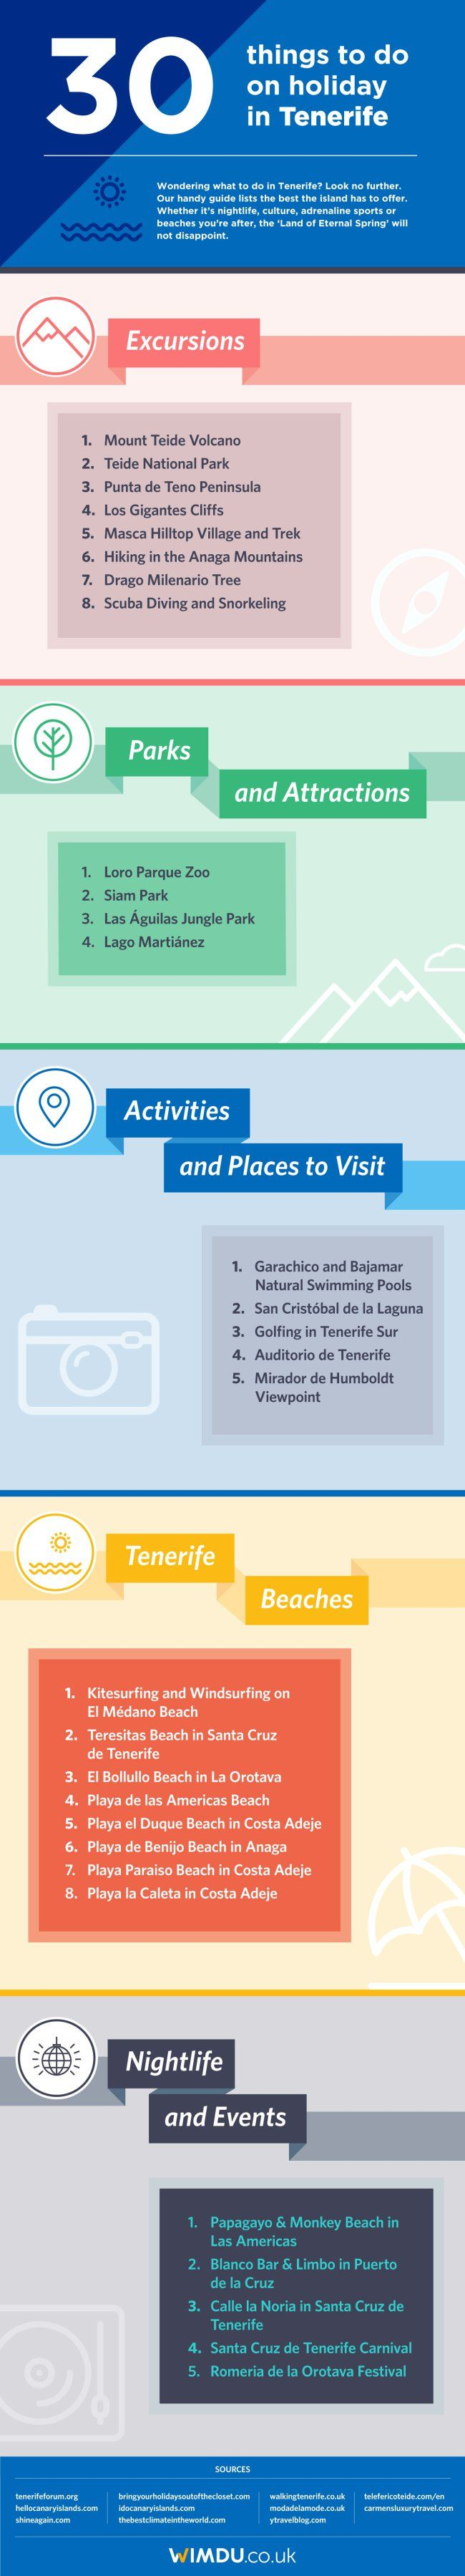 30 Things To Do In Tenerife infographic